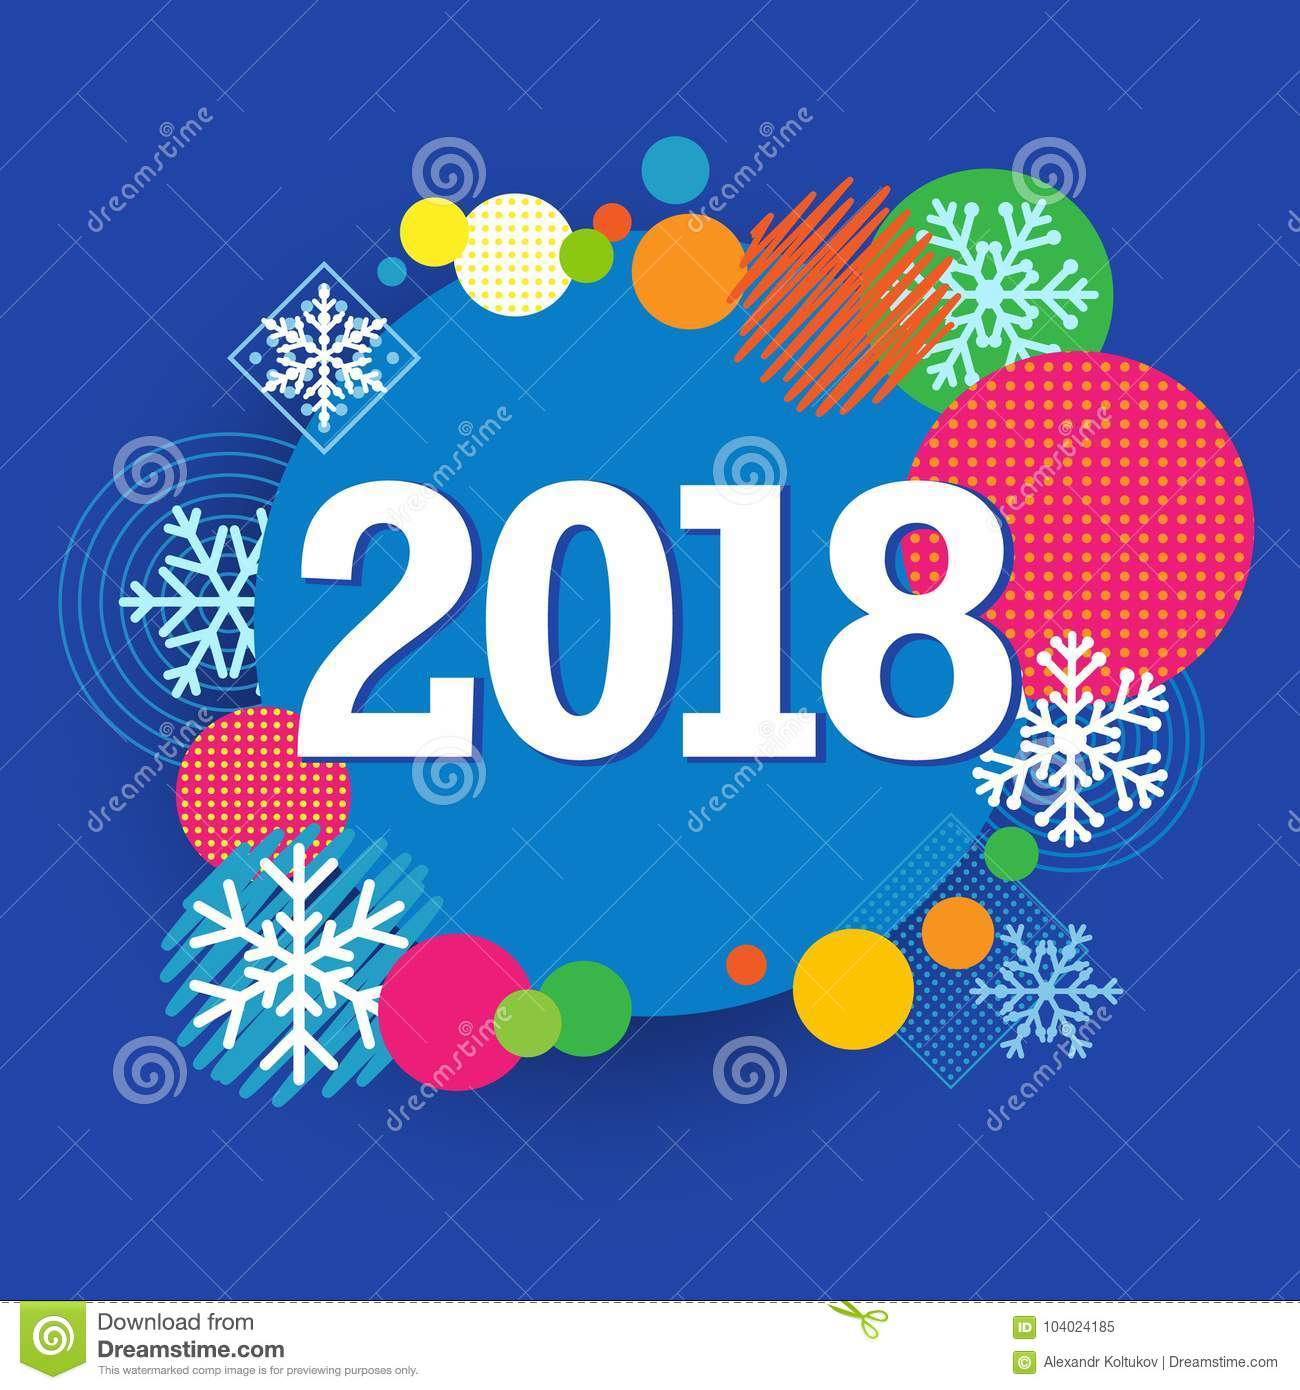 2018 happy new year creative banner colored circle and snow template